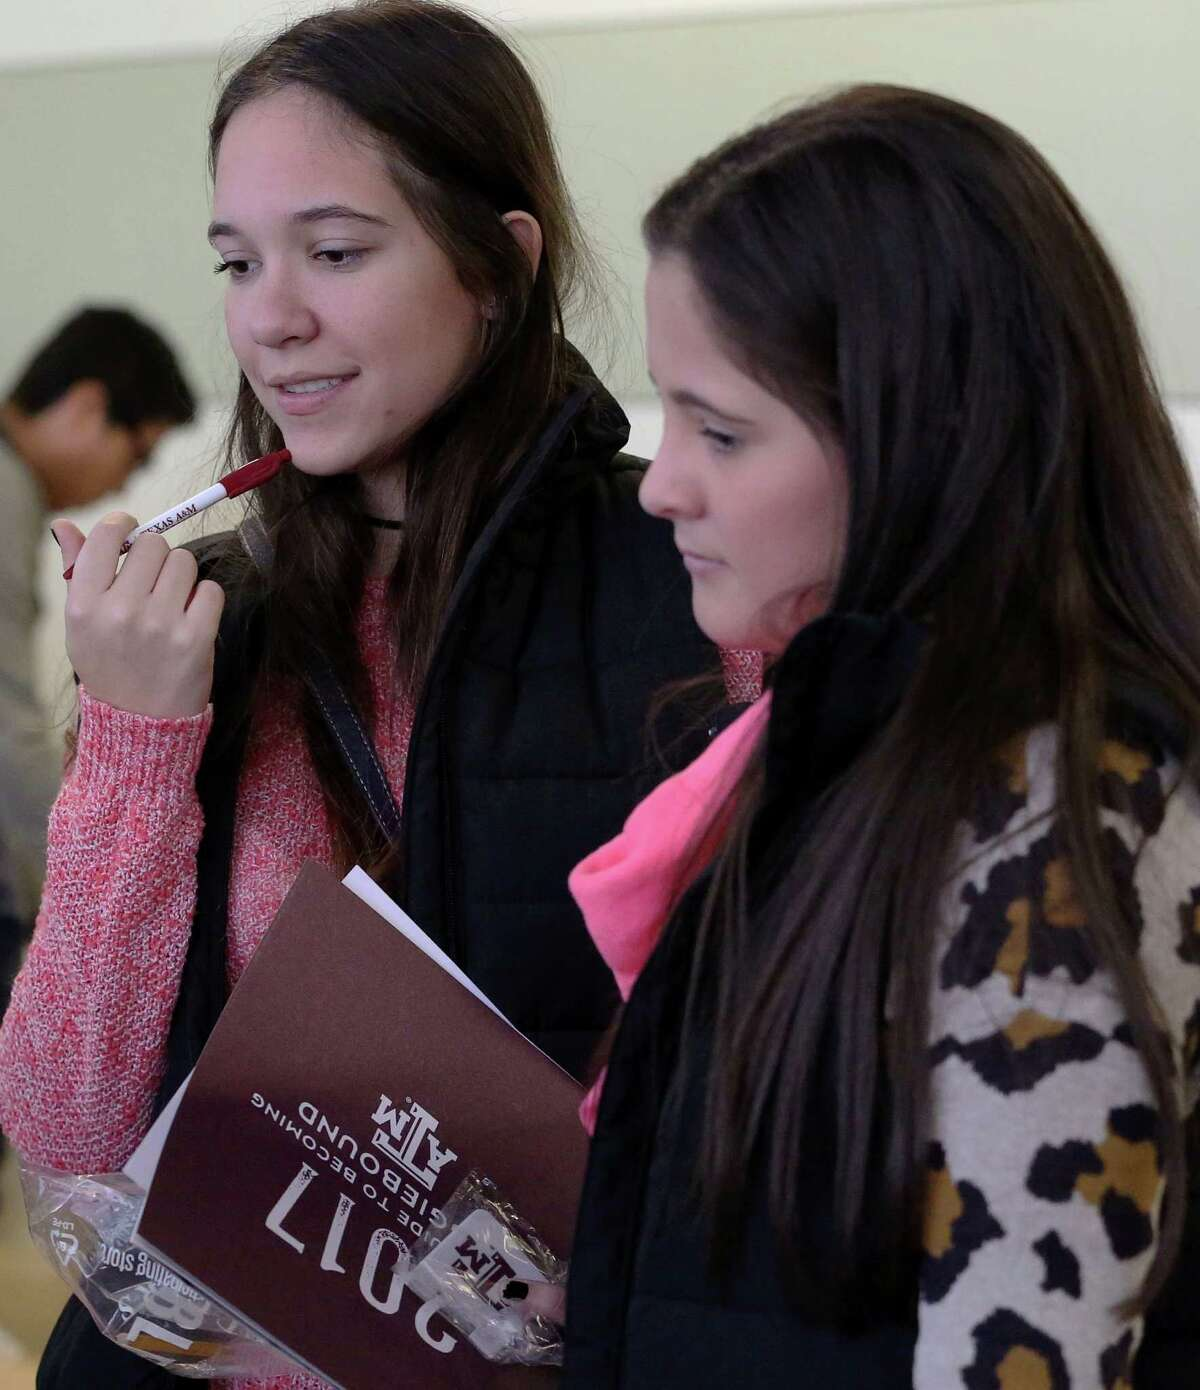 Melissa Chapman, left, and her friend Camila Llorente go through booths for college information at Houston Independent School District's second DREAM Summit Saturday, Dec. 10, 2016, in Houston. Melissa, a 18-year-old junior at Westside High School, immigrated to the U.S. about a-year-and-half ago from Colombia. Nonprofit organizations and college officials were on site to provide students with information about financial aid, student housing, applications and options.